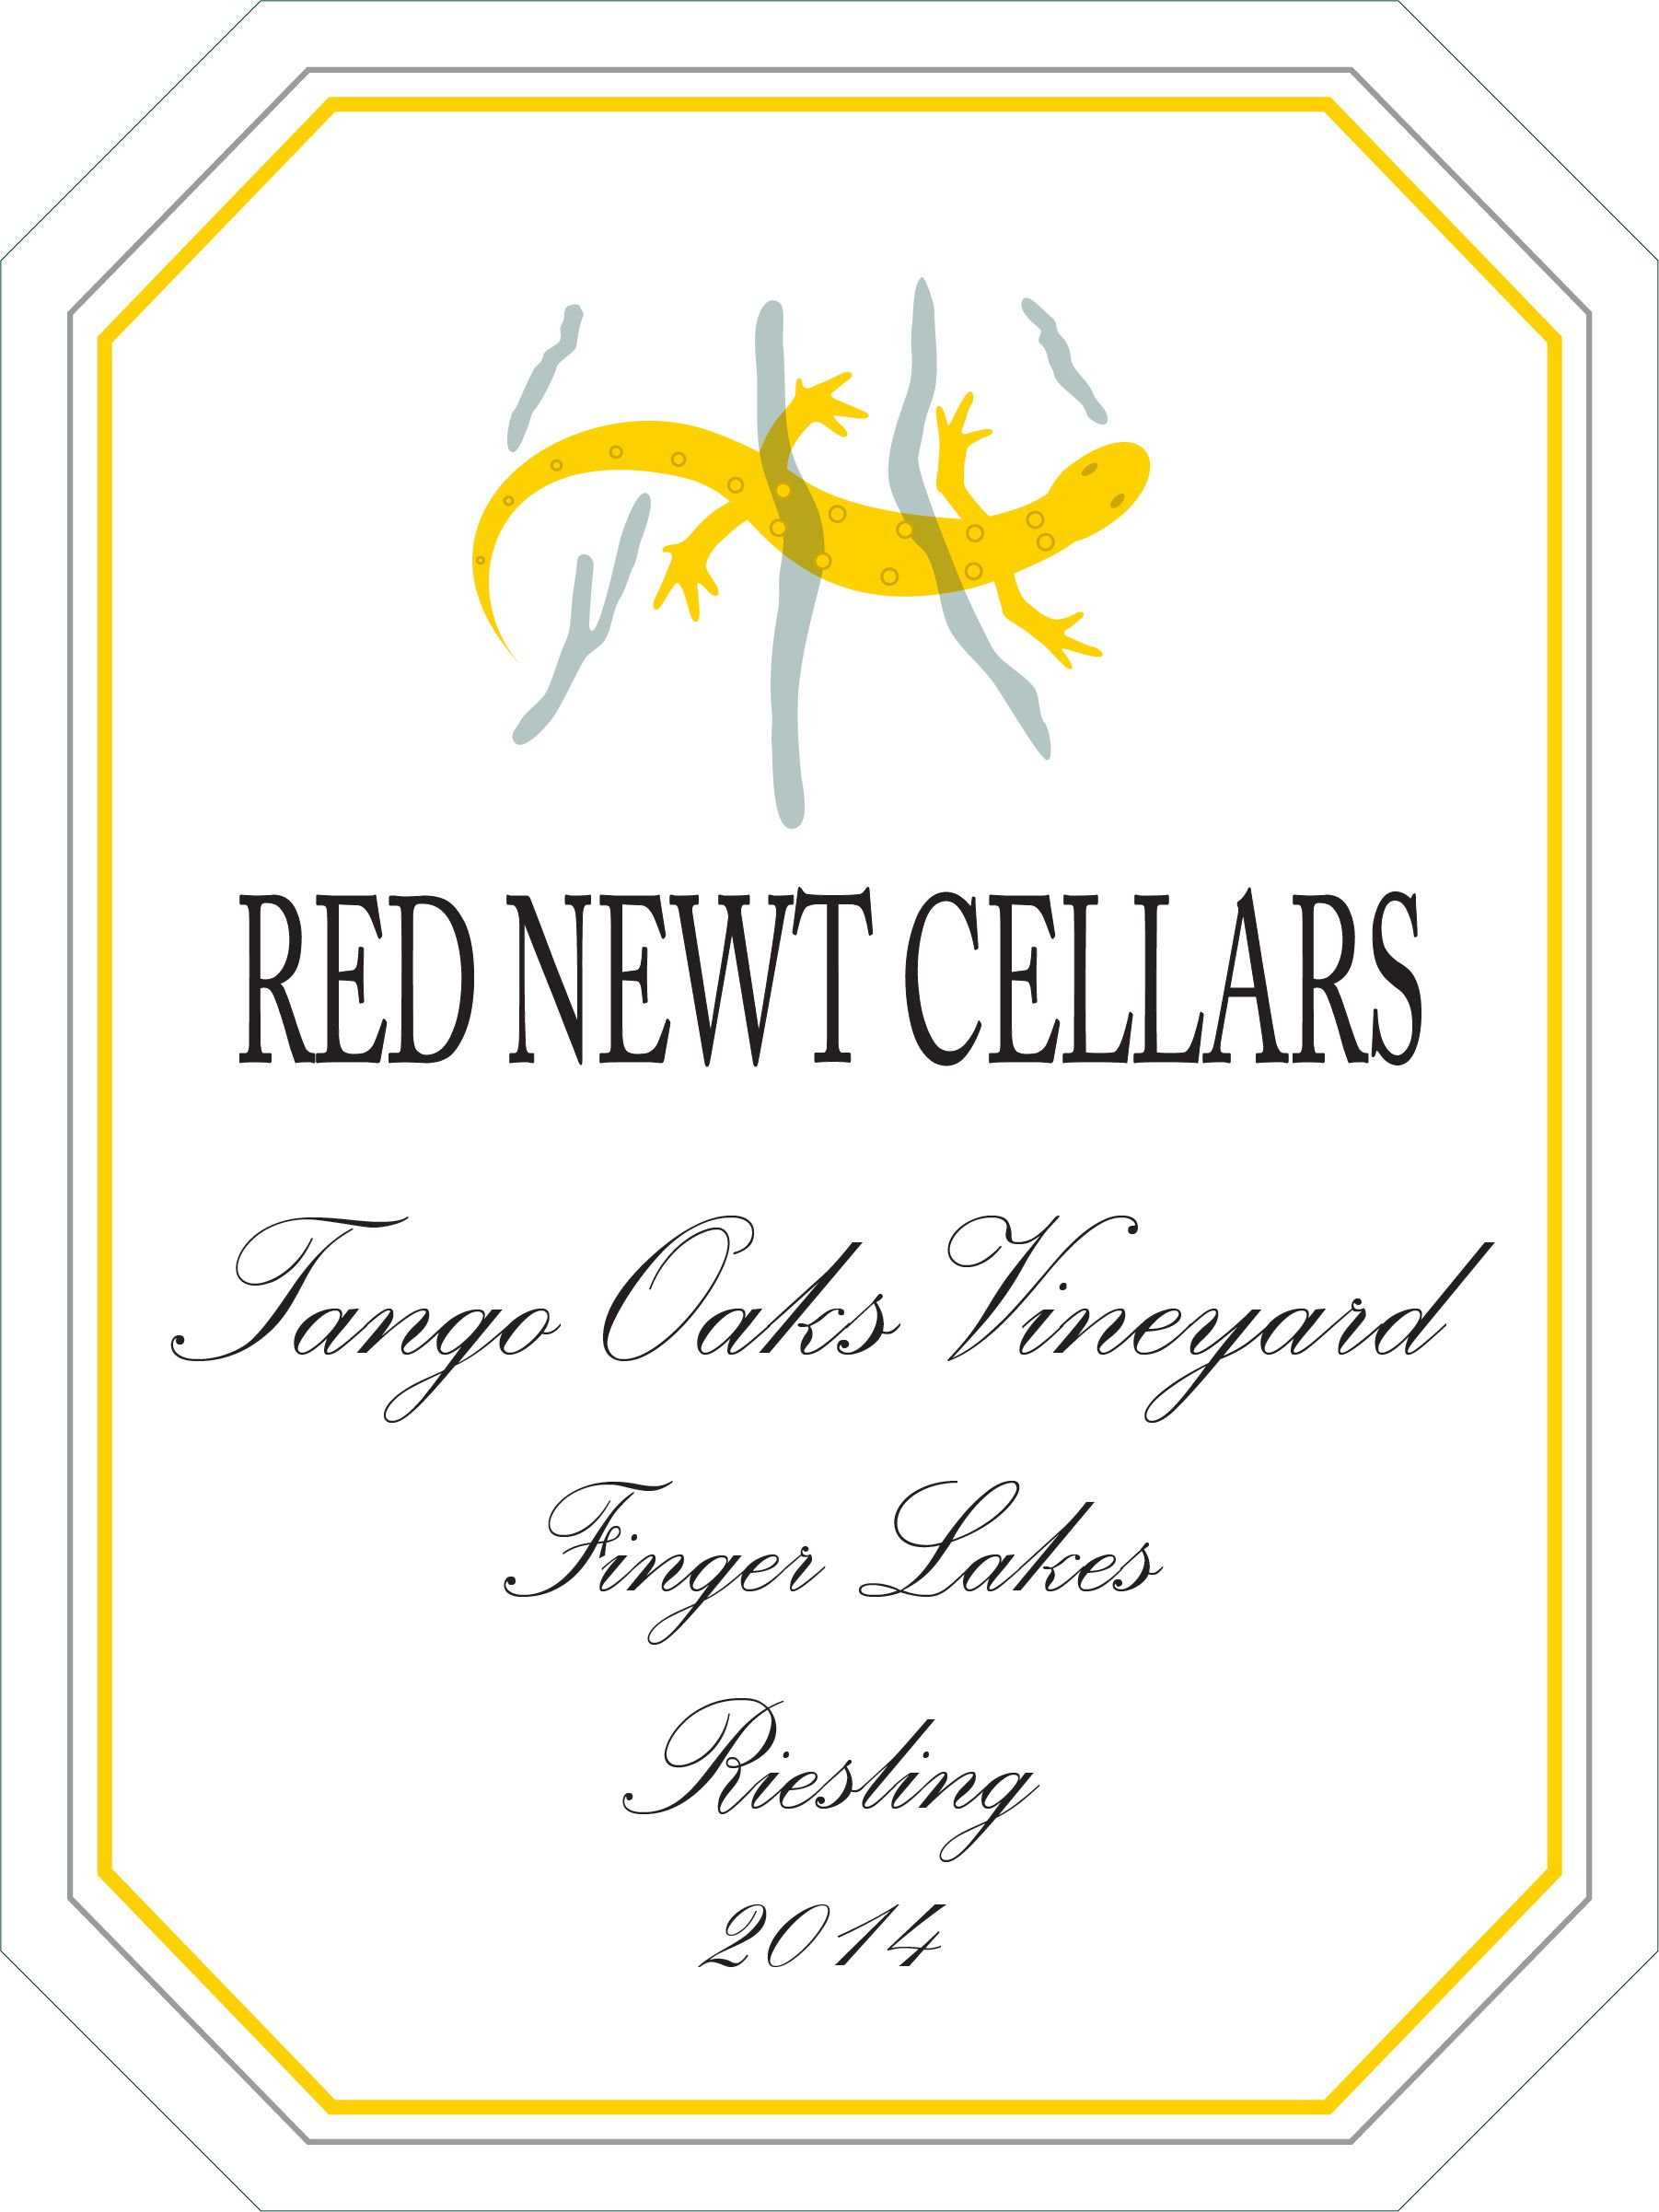 Red Newt Cellars Tango Oaks Riesling 2014 Front Label